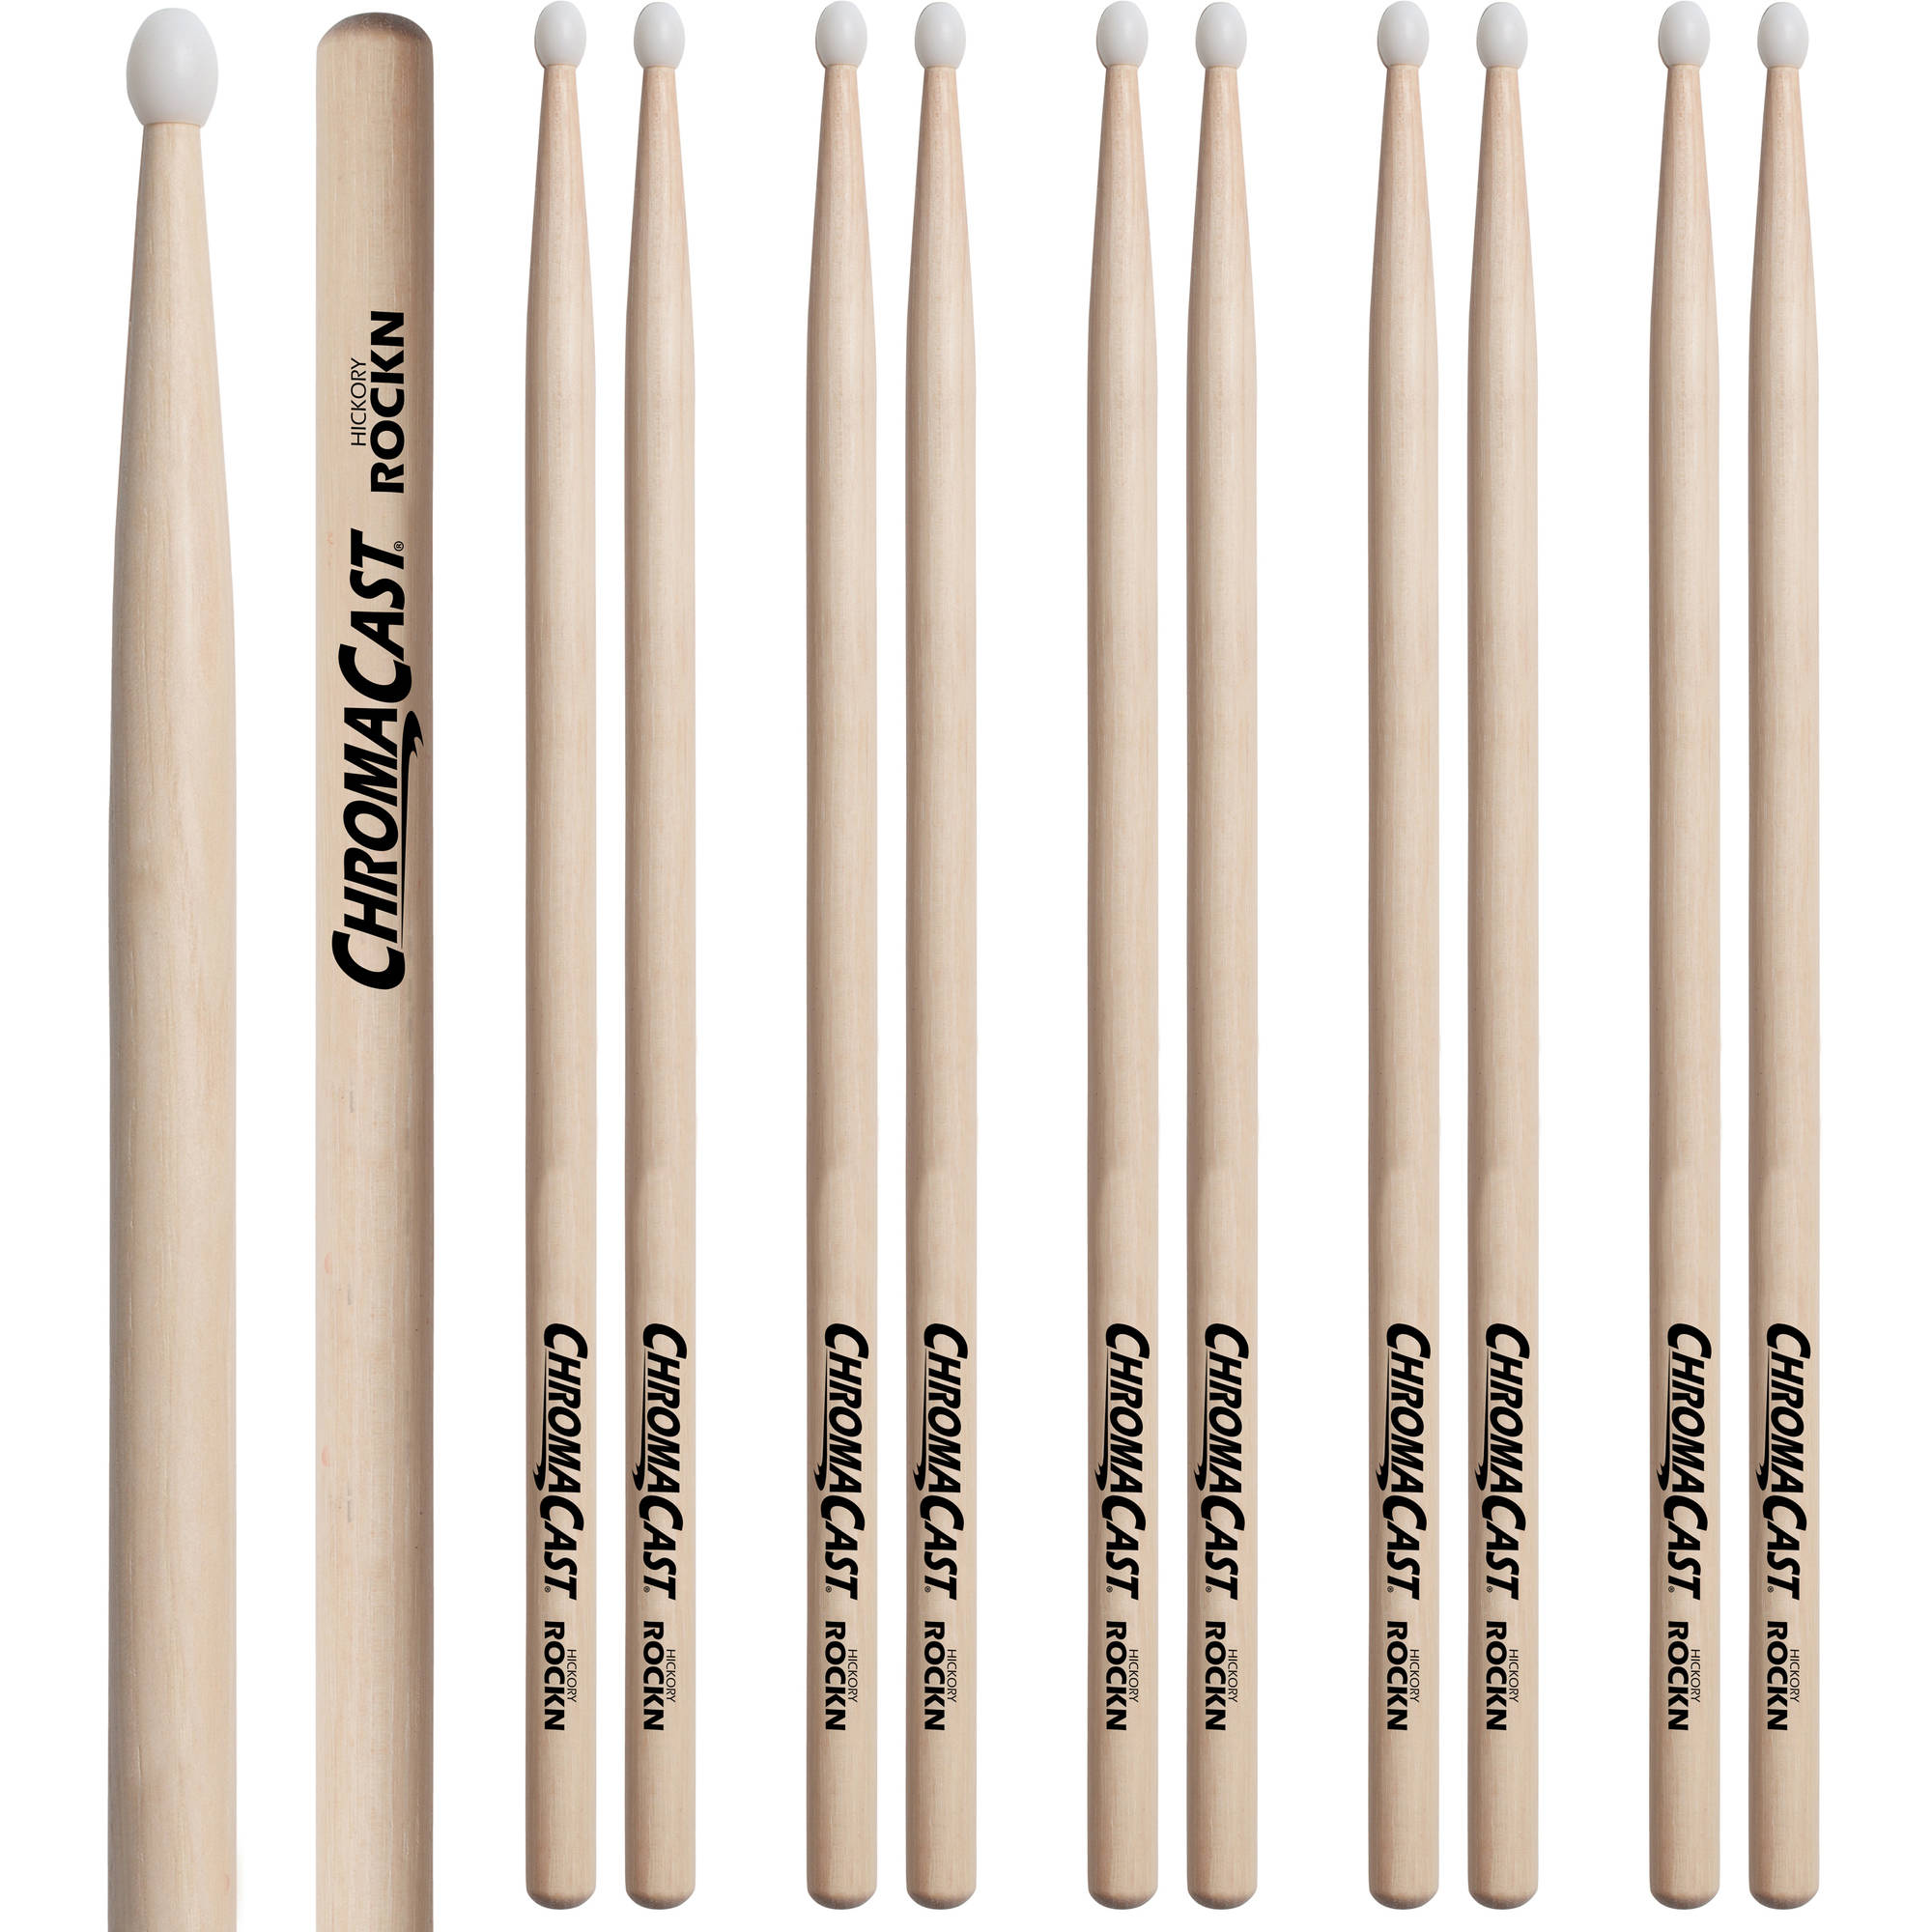 ChromaCast ROCK Hickory Nylon-Tipped Drumsticks, 6 Pairs